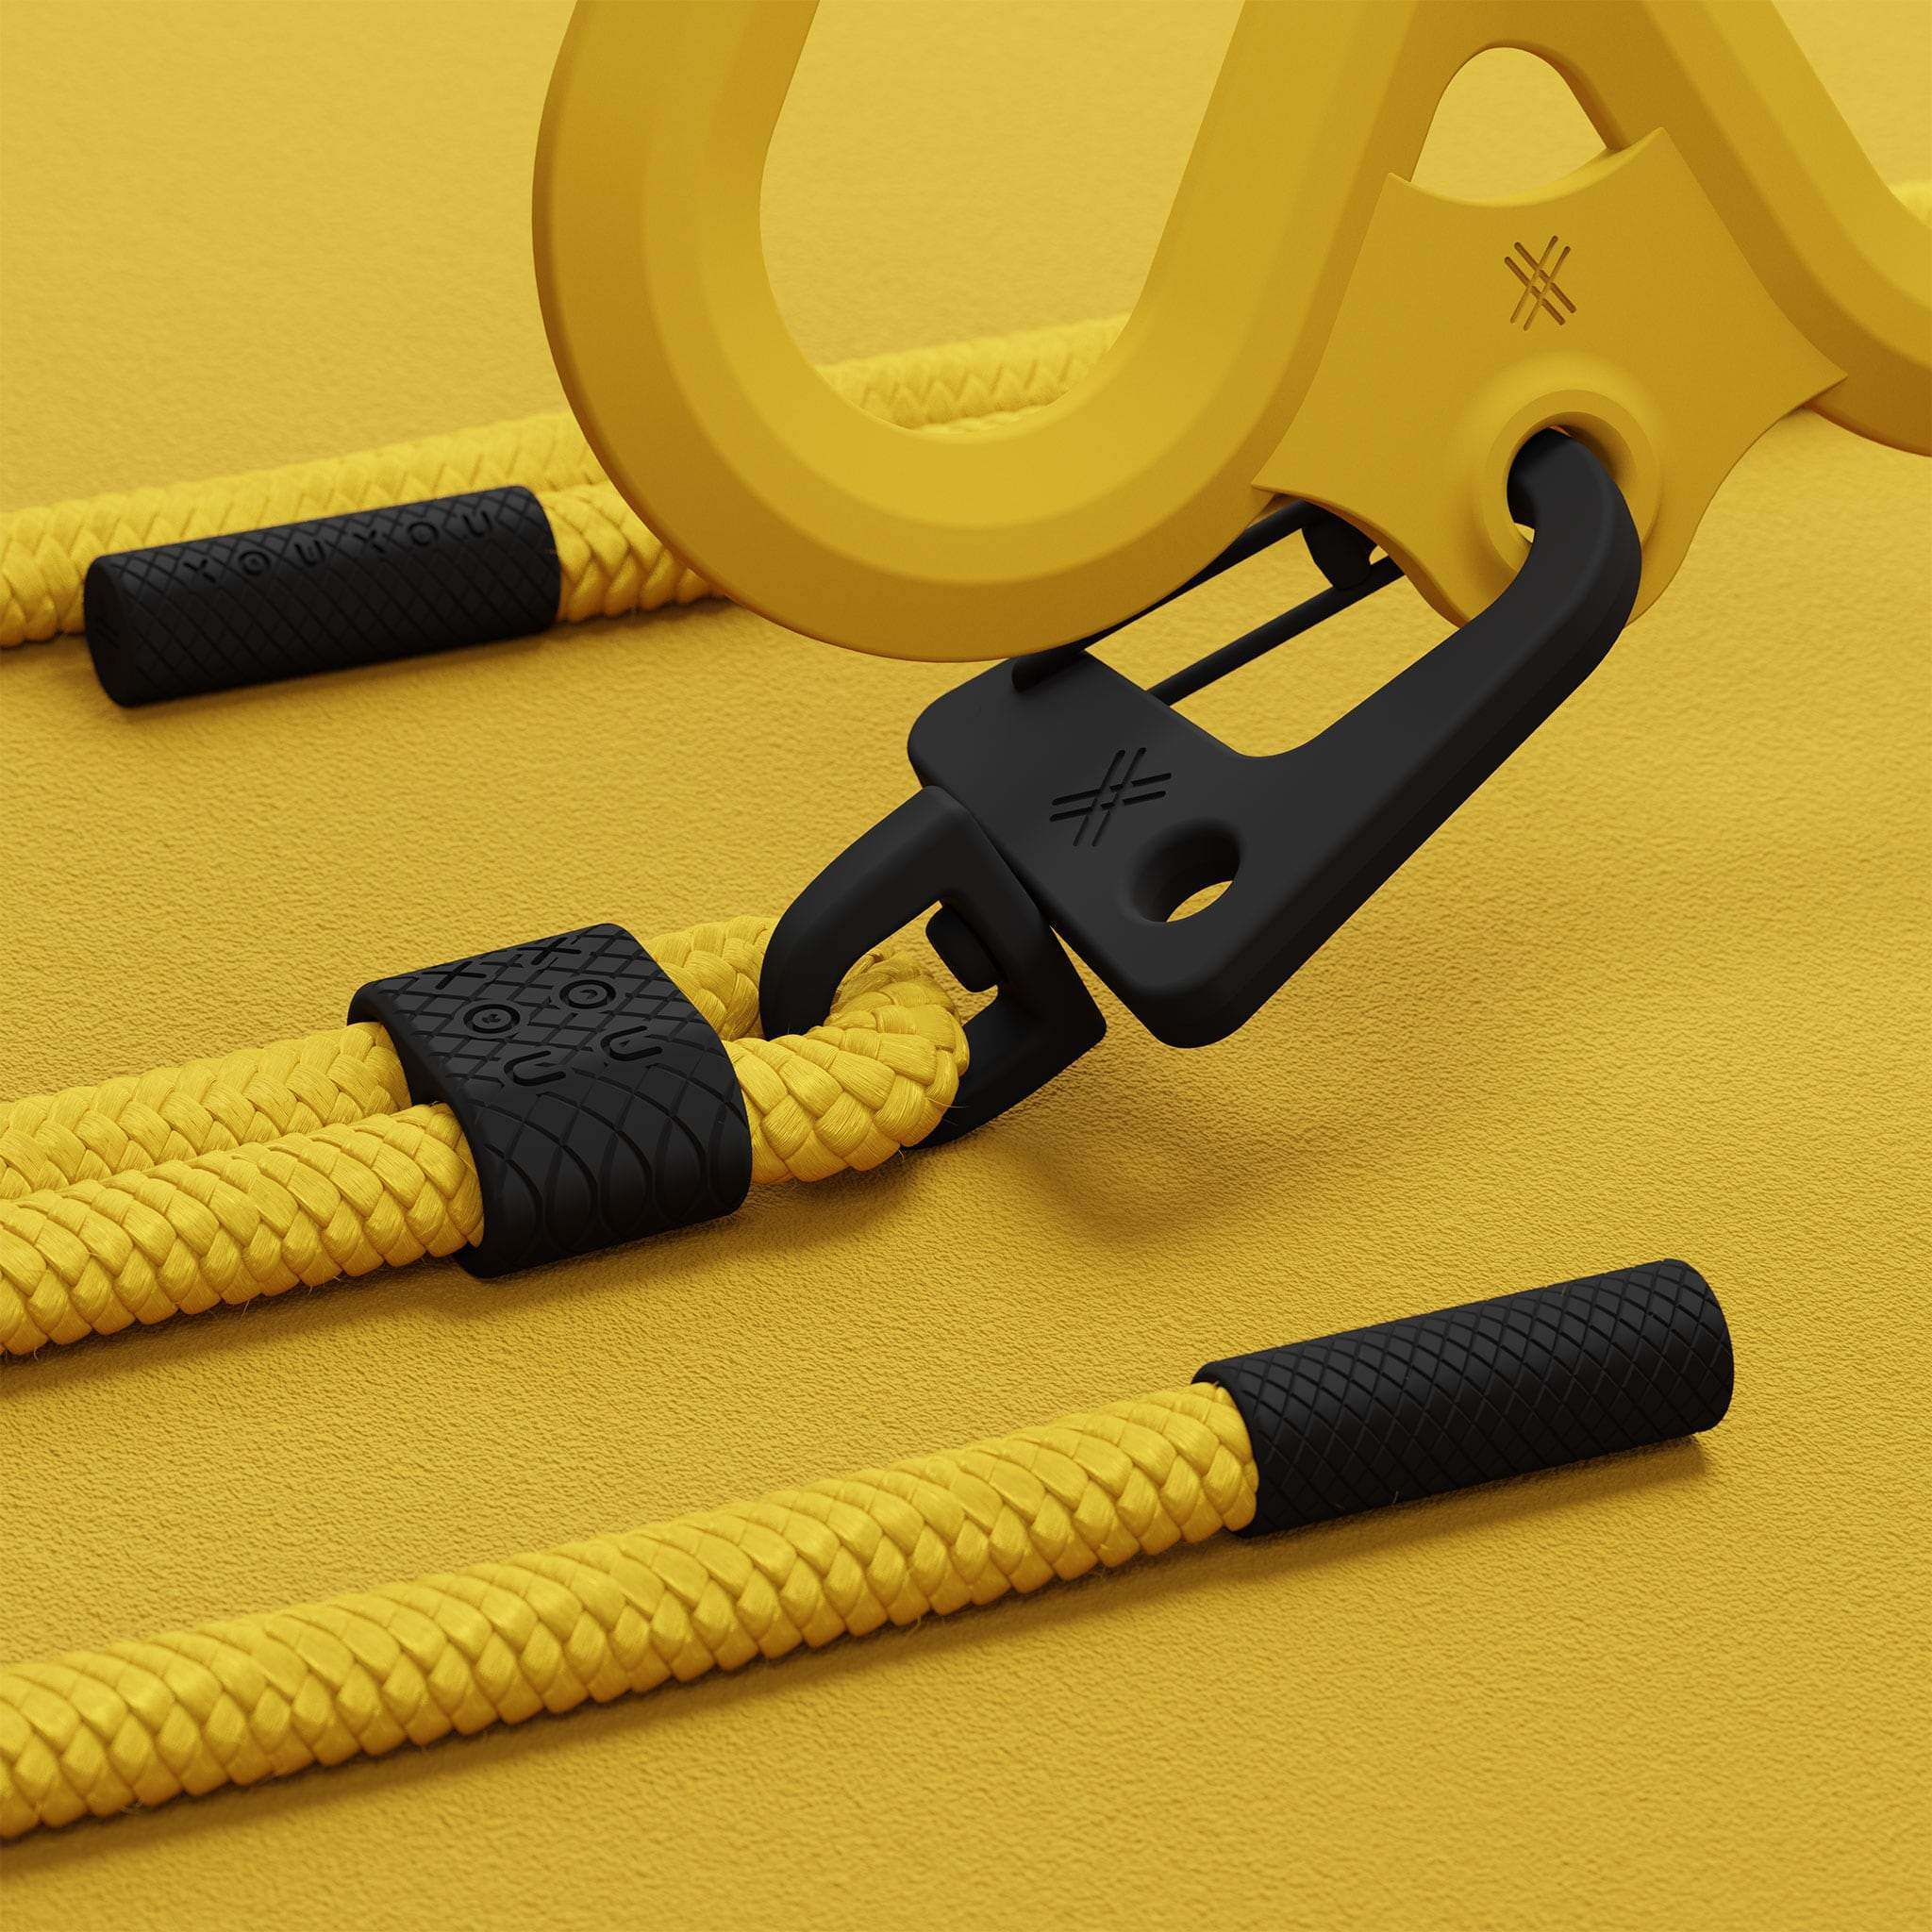 Caramel Silicone X + Carabiner Rope